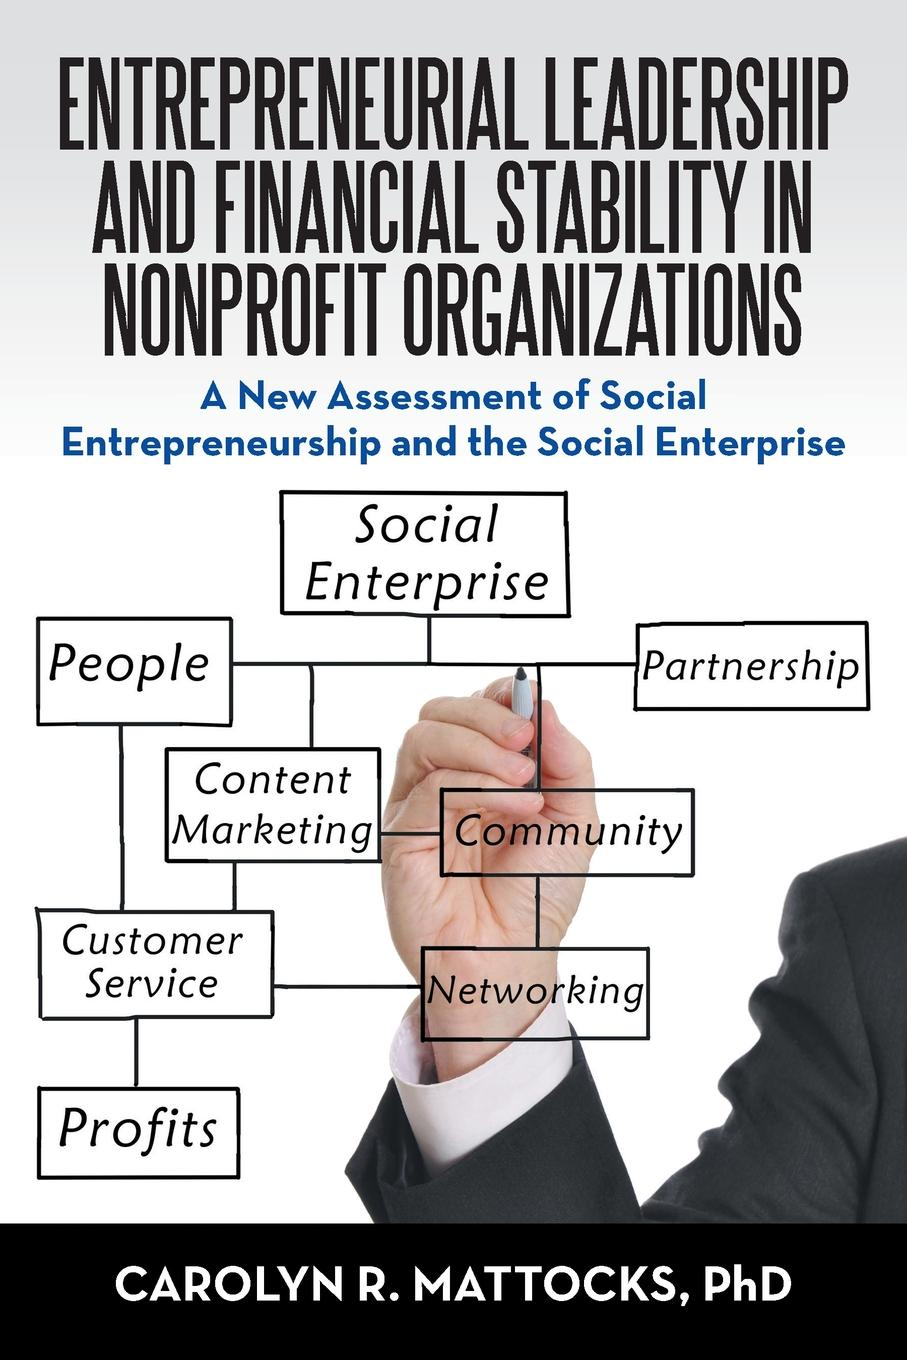 PhD Carolyn R. Mattocks Entrepreneurial Leadership and Financial Stability in Nonprofit Organizations. A New Assessment of Social Entrepreneurship and the Social Enterprise beth kanter the networked nonprofit connecting with social media to drive change